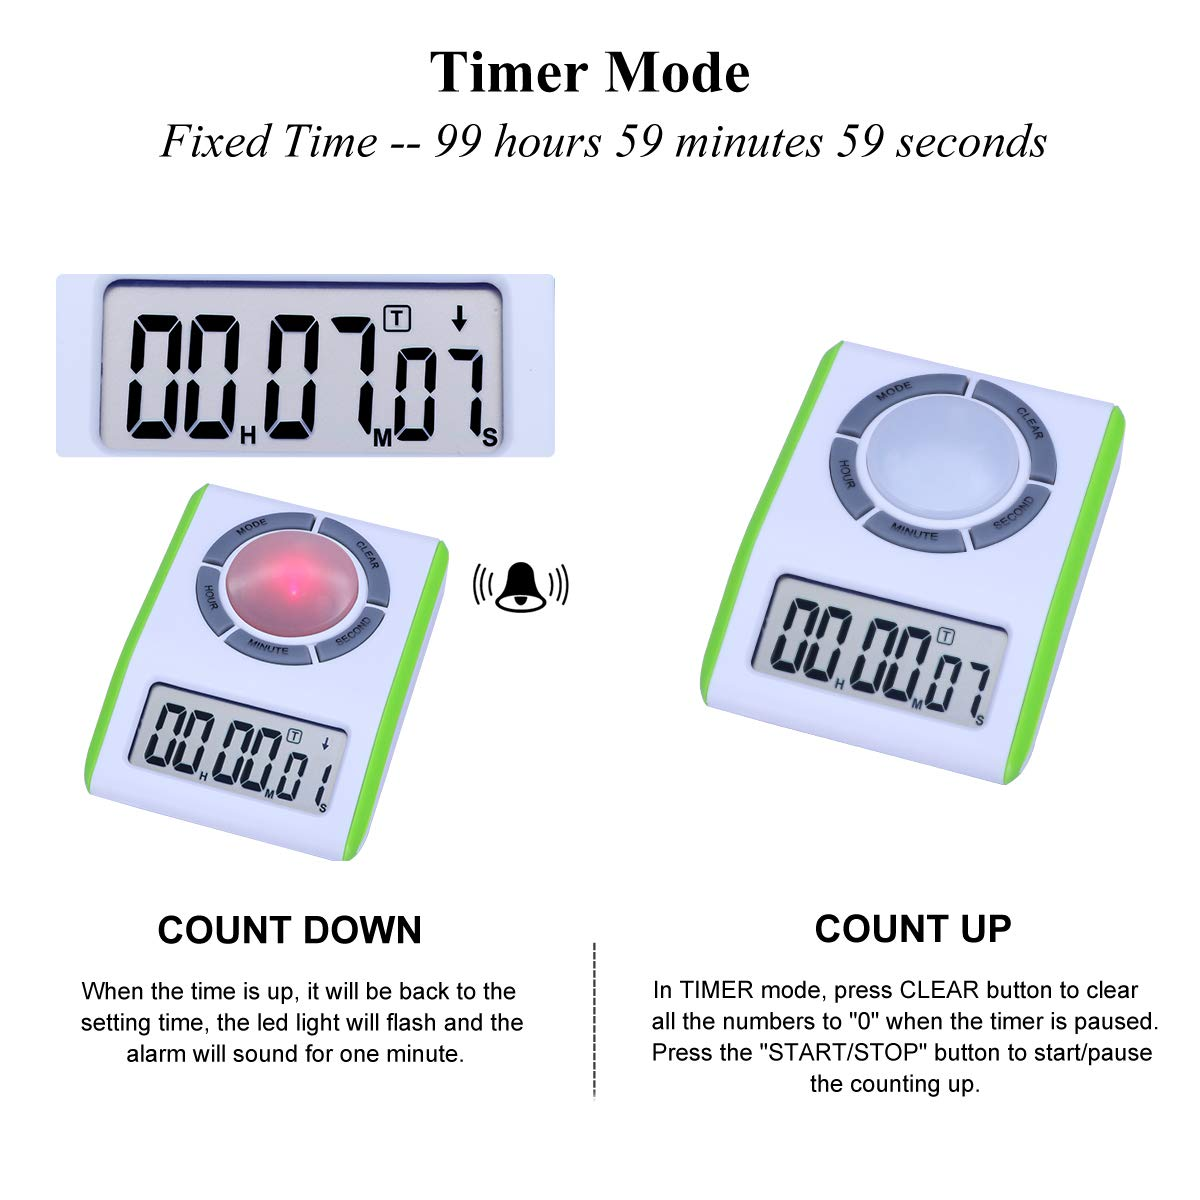 Turn On//Off and Clock Feature for Table Top and Laboratory Use- Batteries Included. Digital Kitchen Timer Clock 12//24 Hours Wedge Shaped with Countdown Count-up Green Color